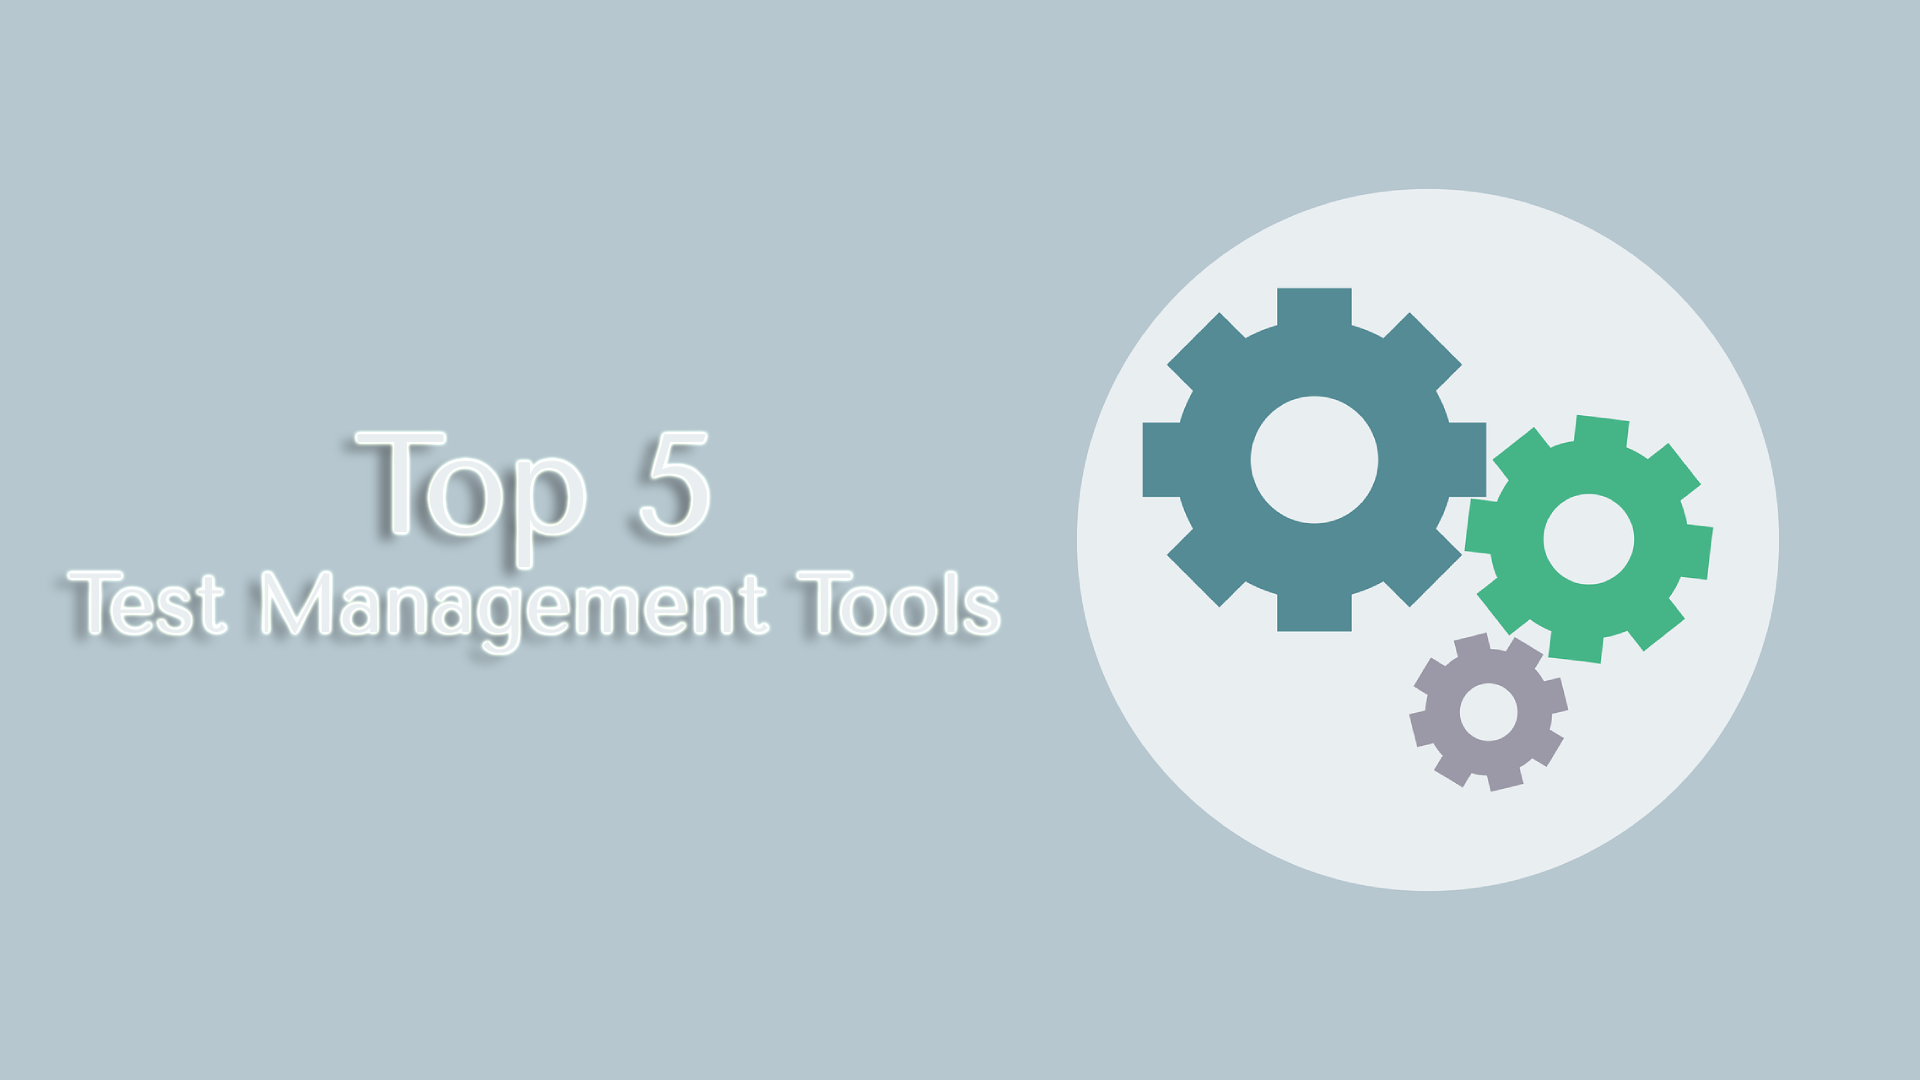 Top 5 Test Management Tools